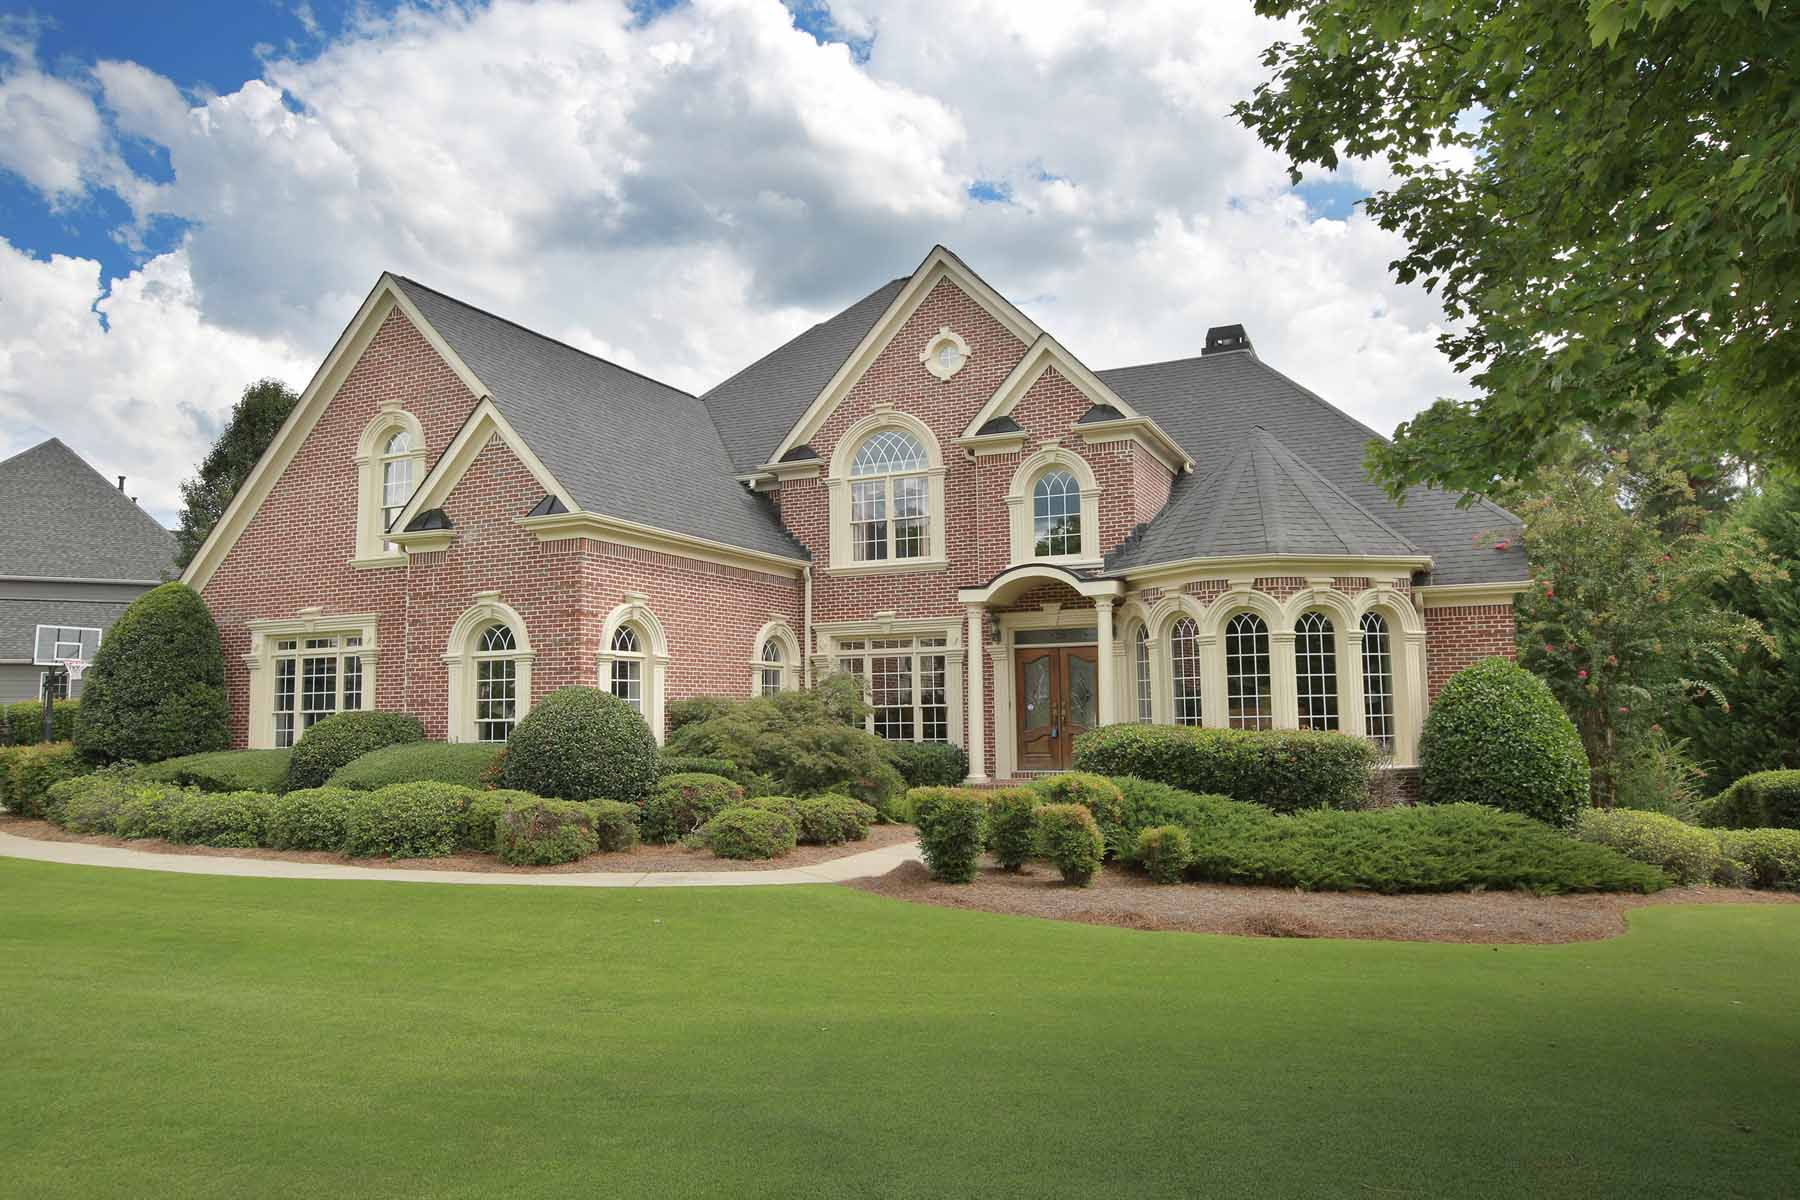 Single Family Home for Active at Exemplary Custom Built Home in Reserve at Bridgemill 2025 Gold Leaf Parkway Canton, Georgia 30114 United States